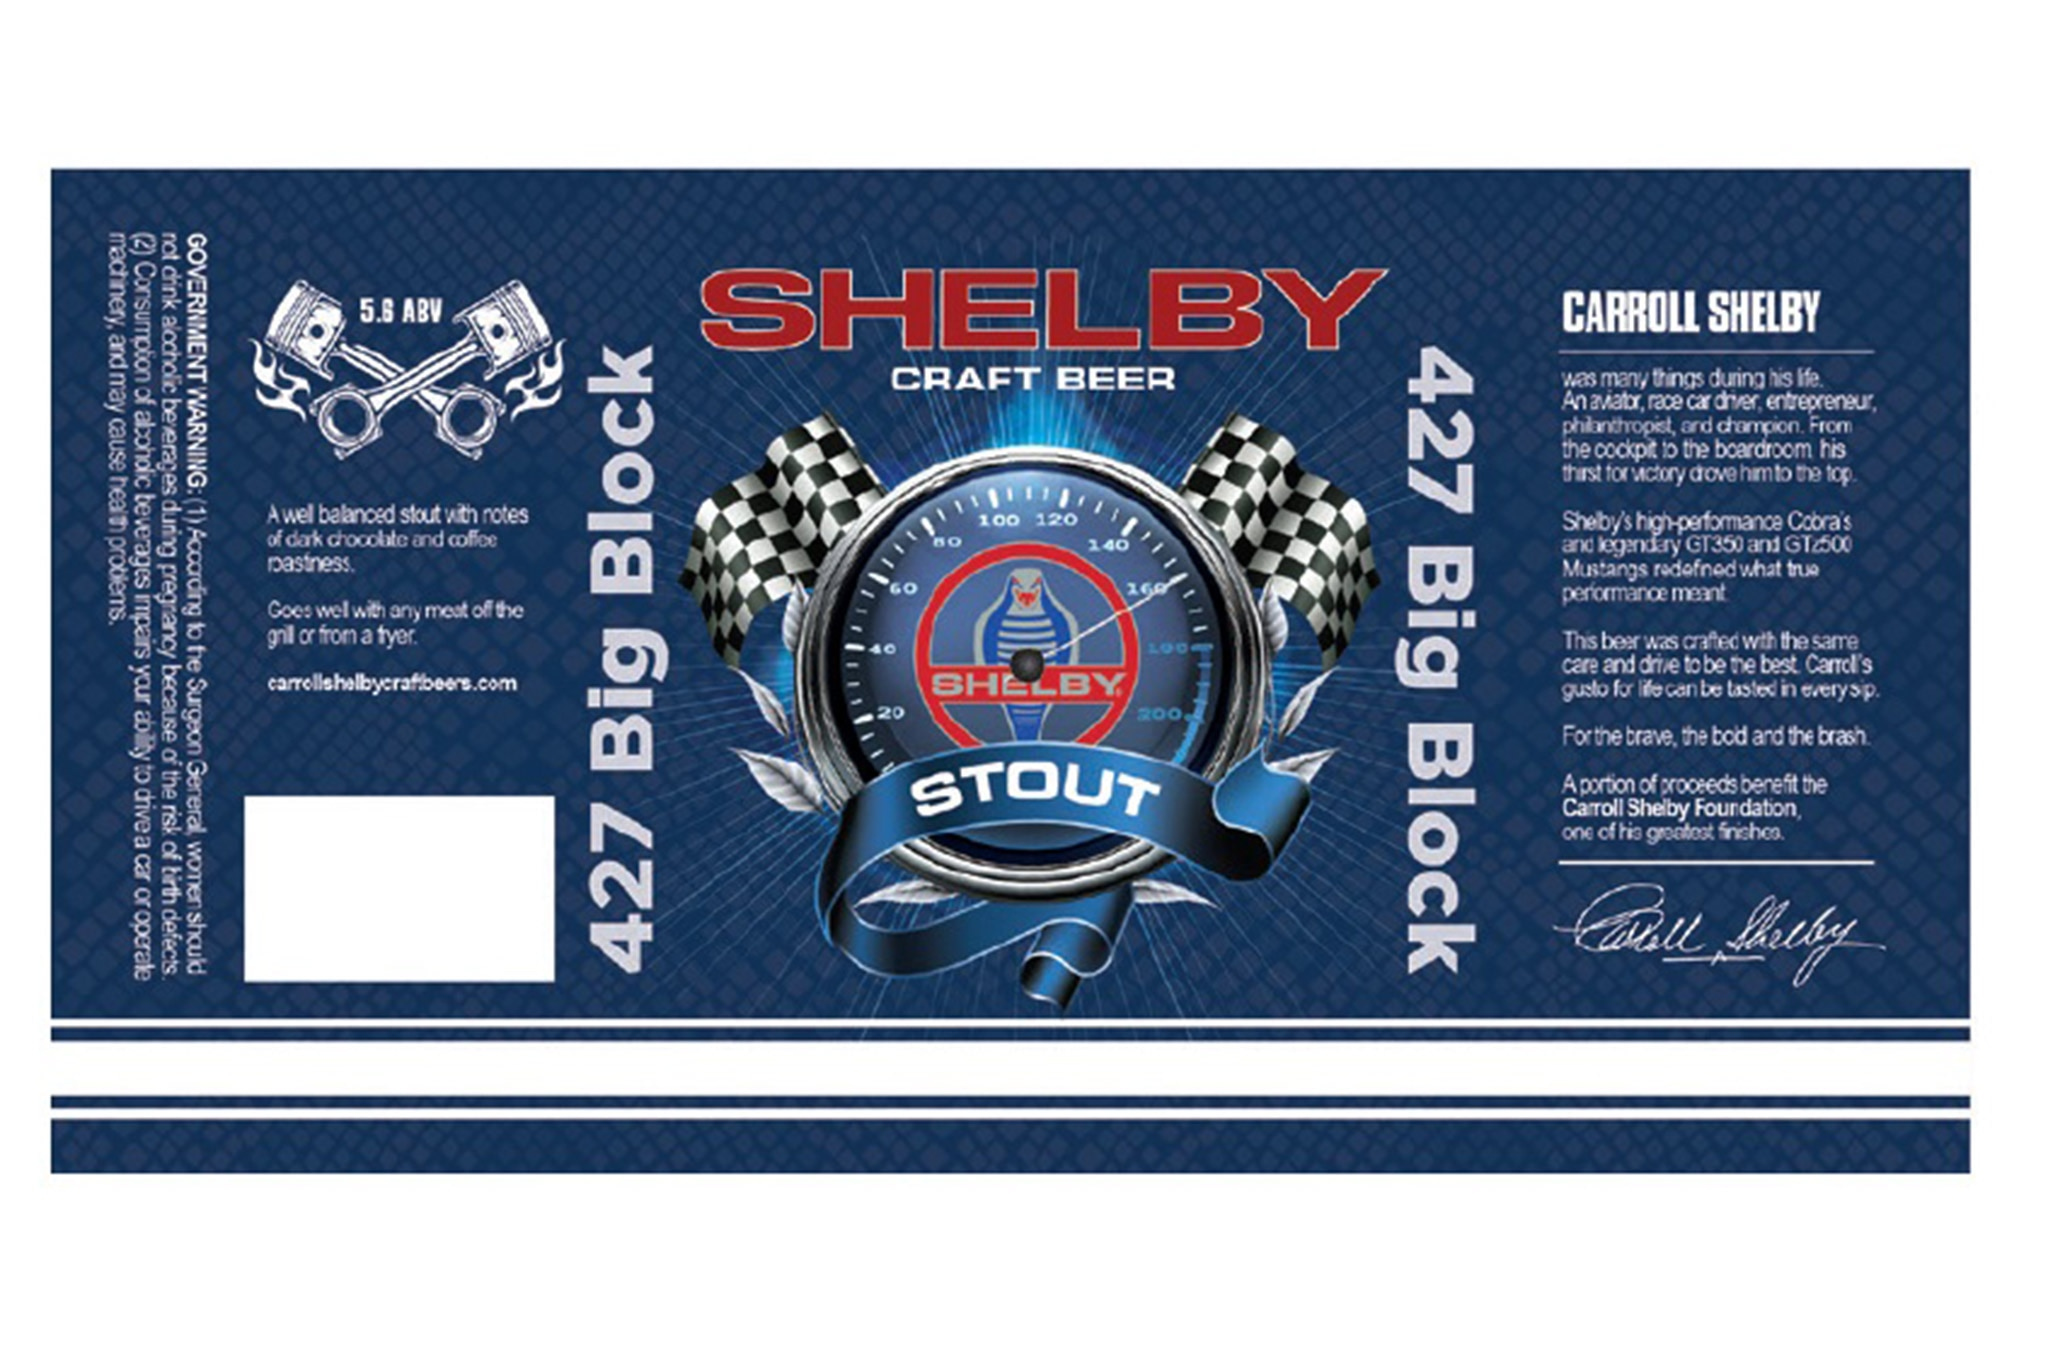 Carroll Shelby Craft Beer 427 Big Block Stout